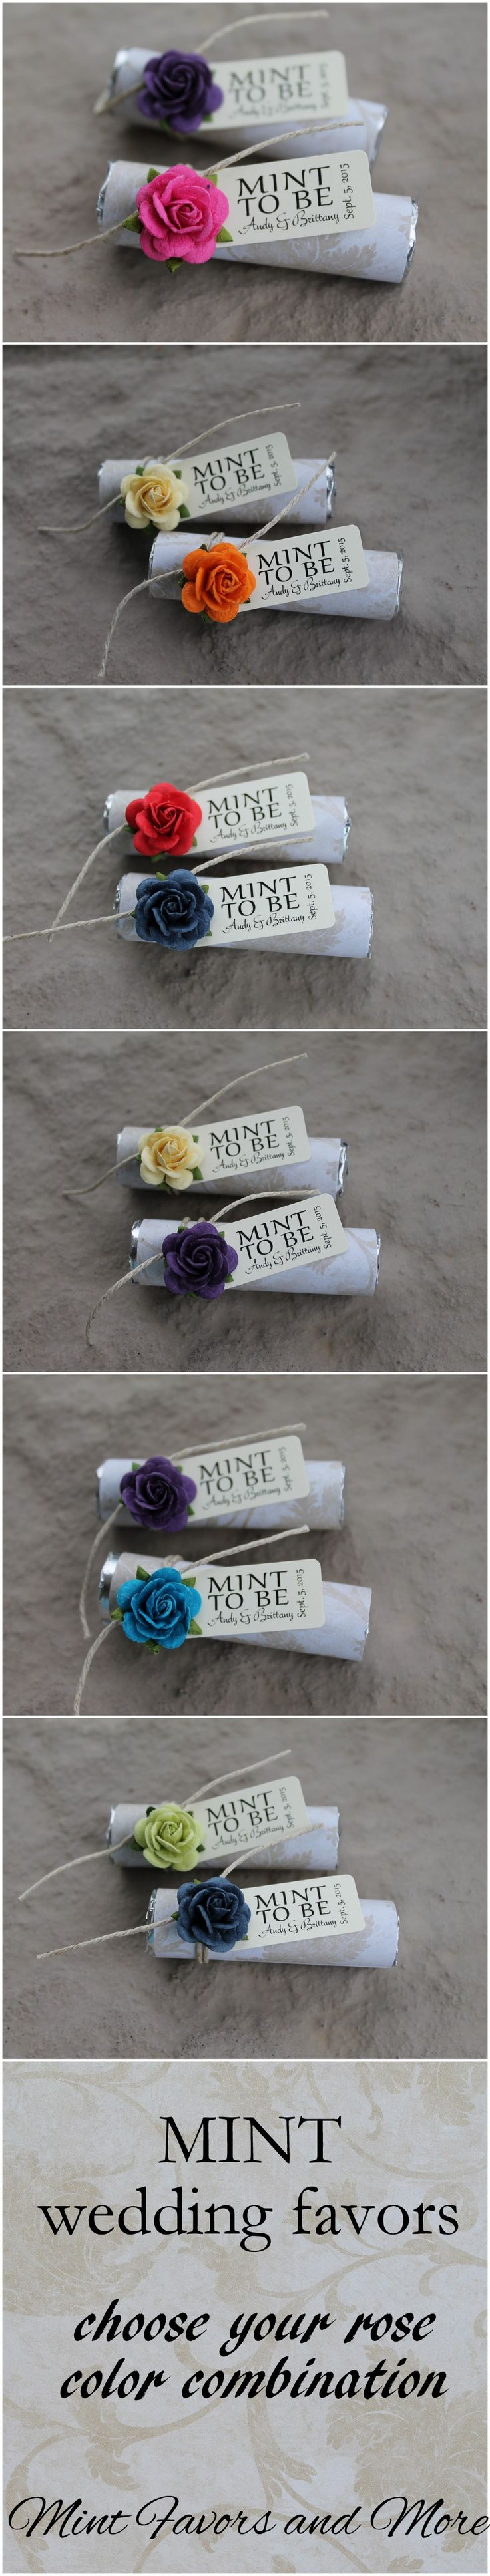 Wedding favors with a personalized tag, custom designed to match your wedding. Many colors to choose from at www.mintfavorsandmore.etsy.com.